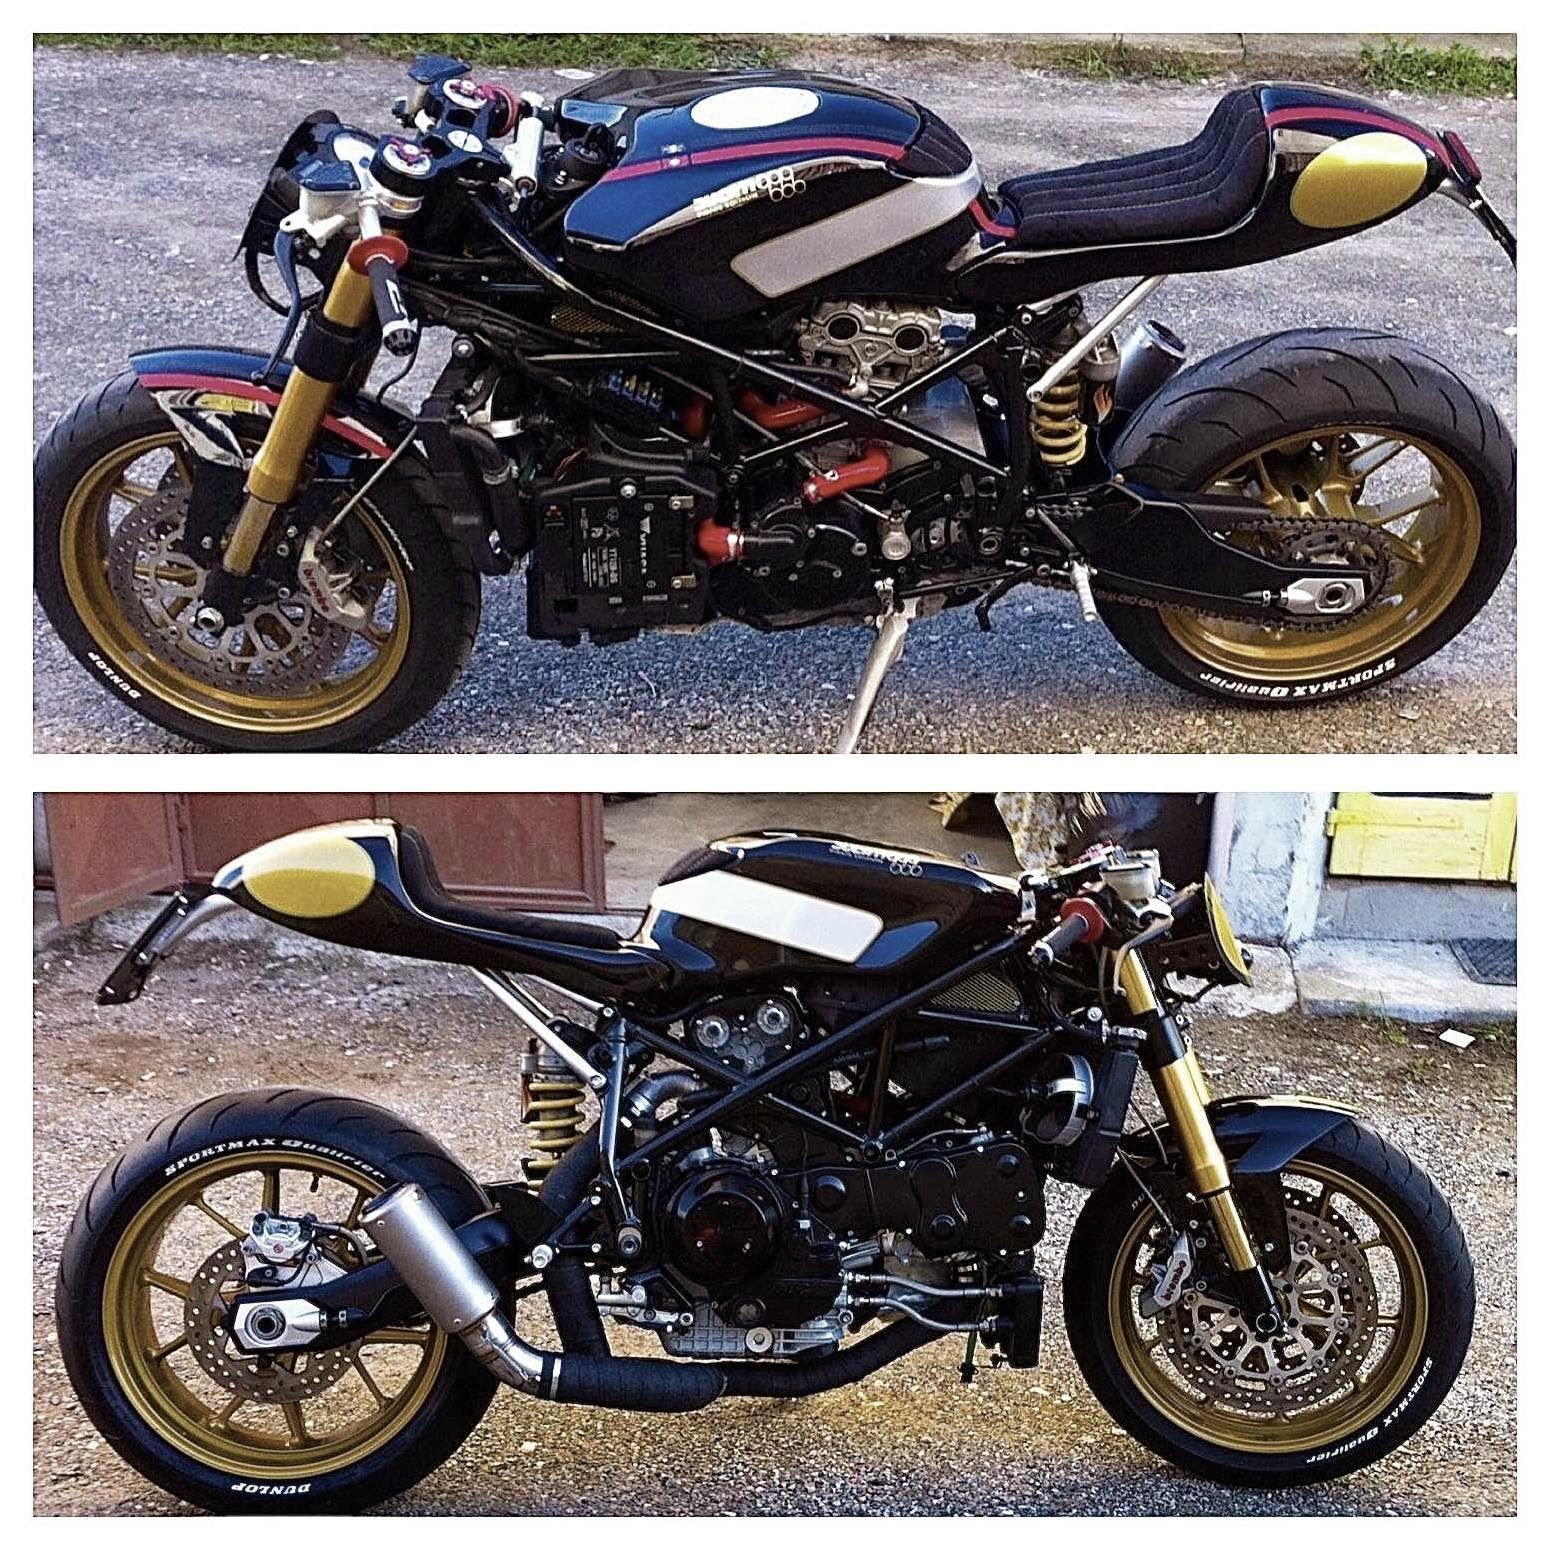 RocketGarage Cafe Racer: Ducati 999 Pirate edition